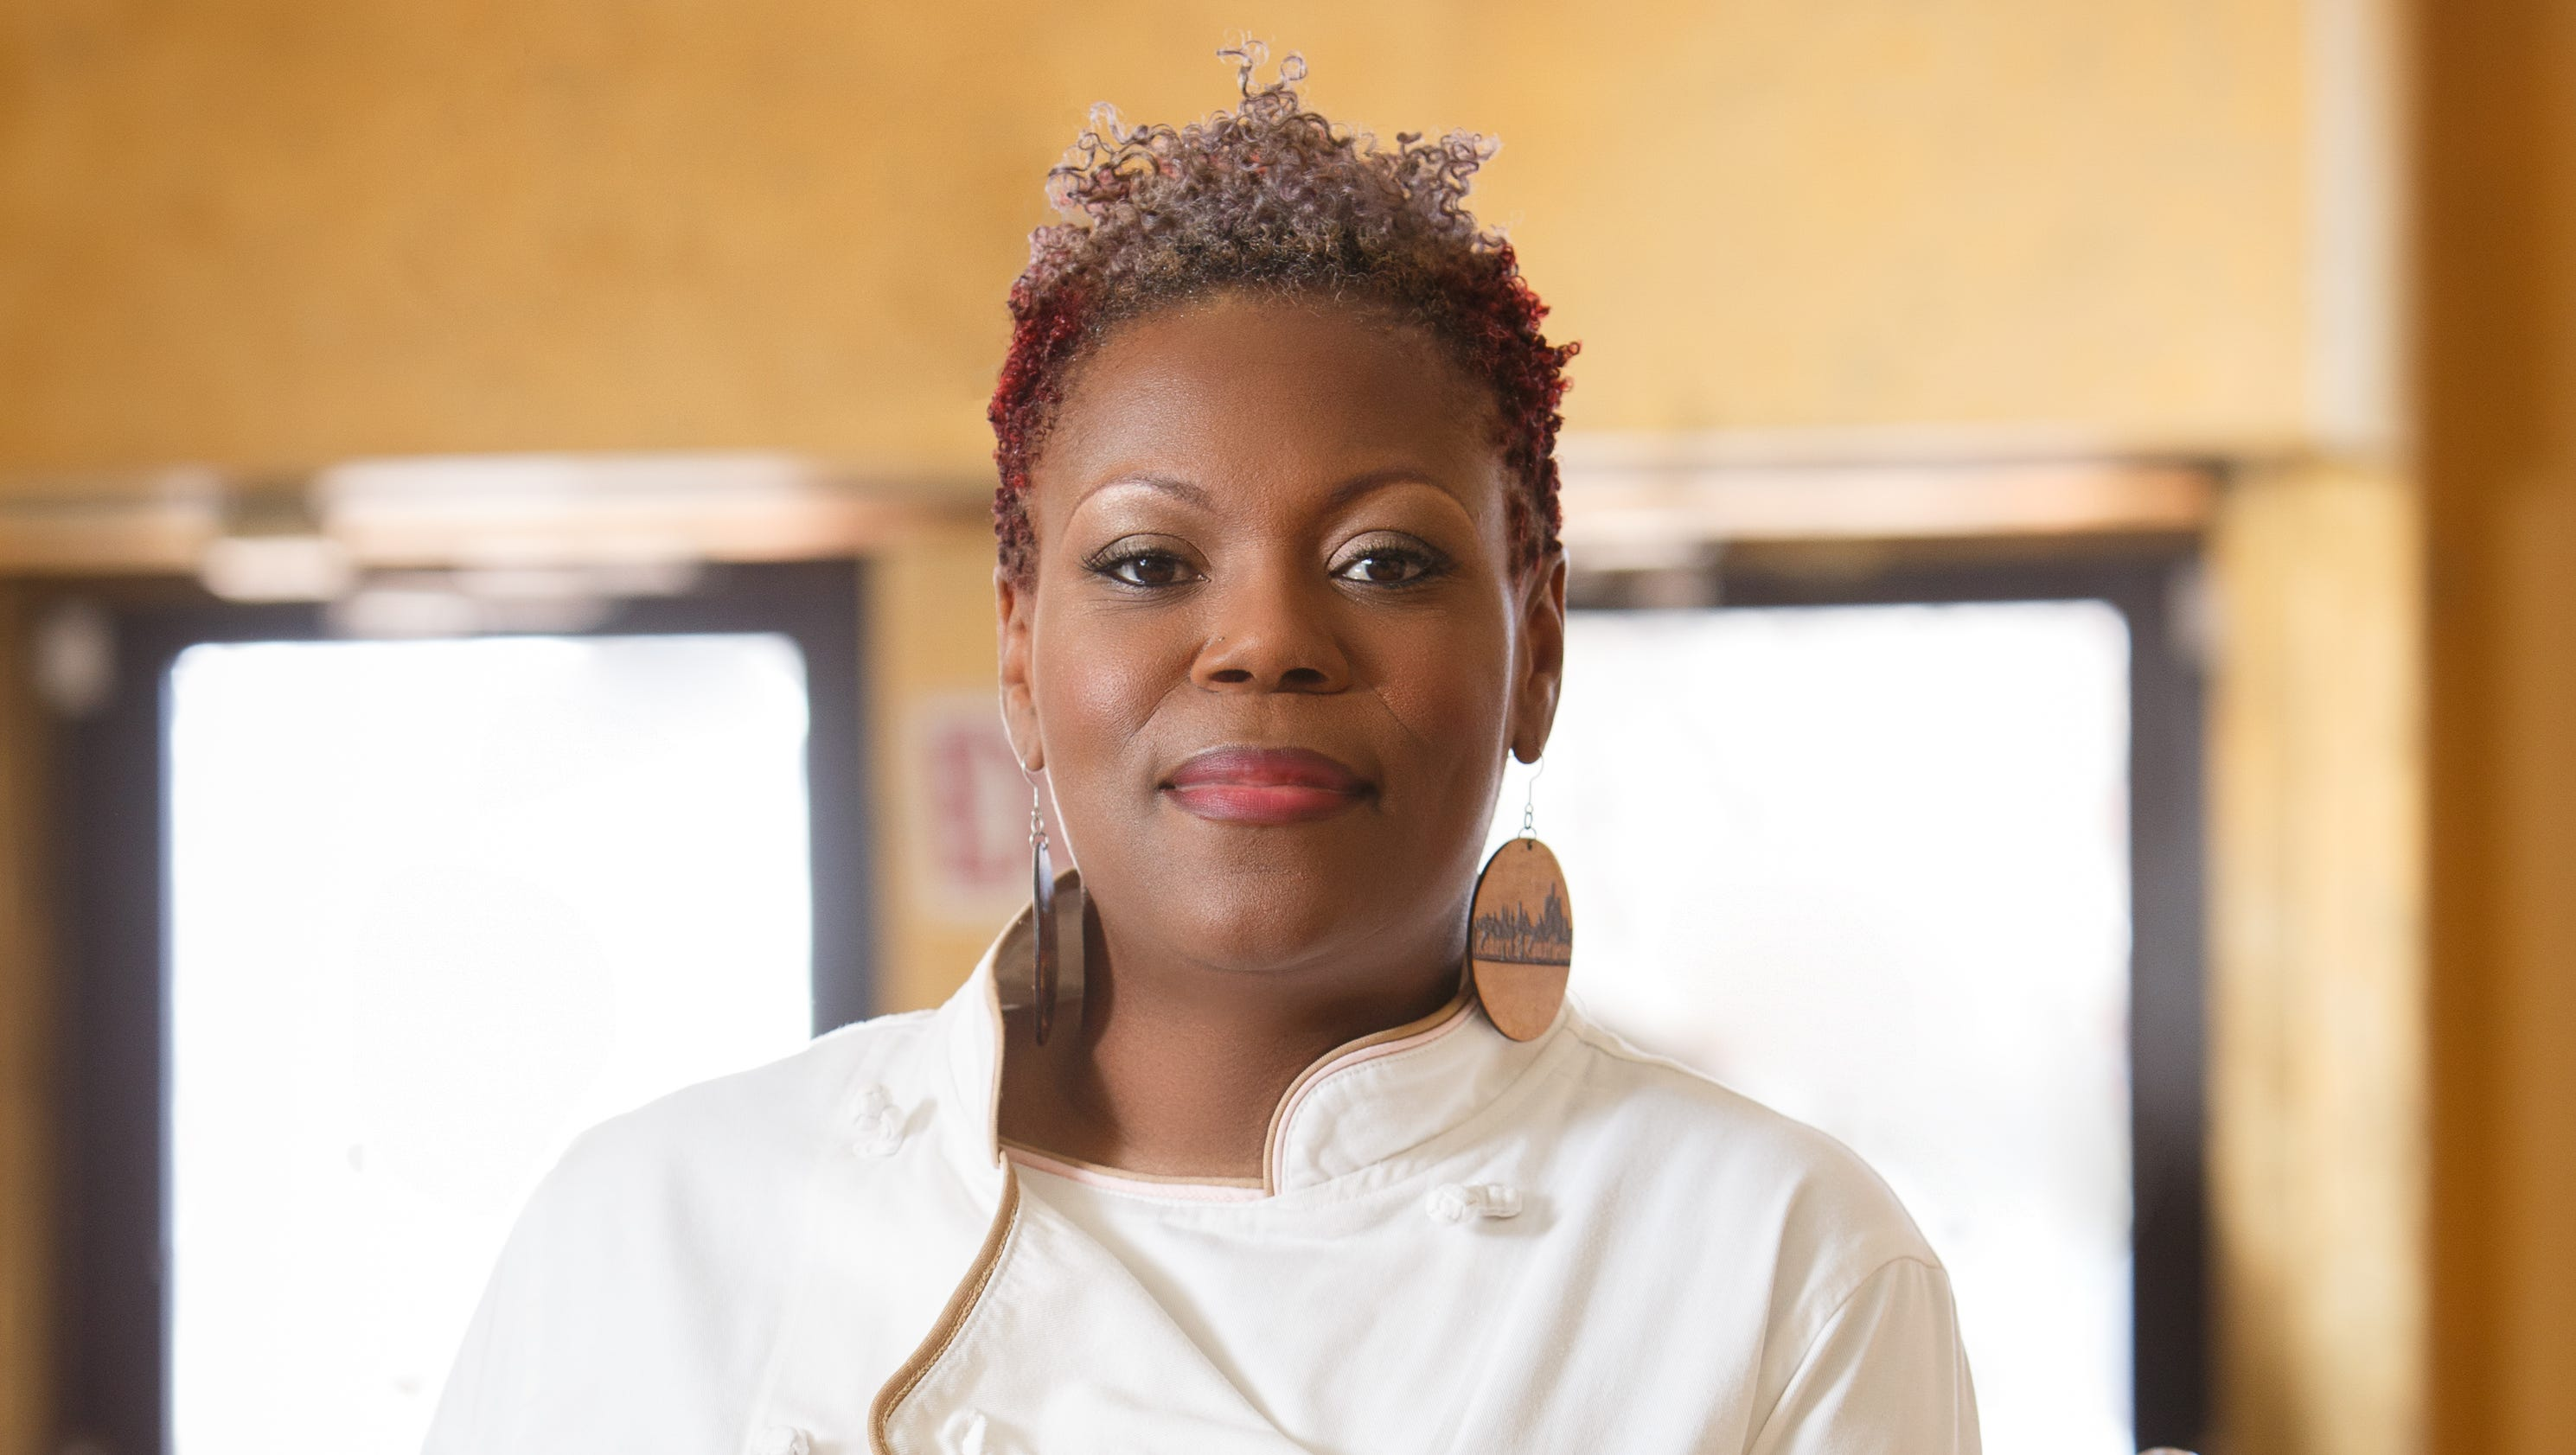 Baker from Detroit's Good Cakes and Bakes invited to James Beard Foundation boot camp